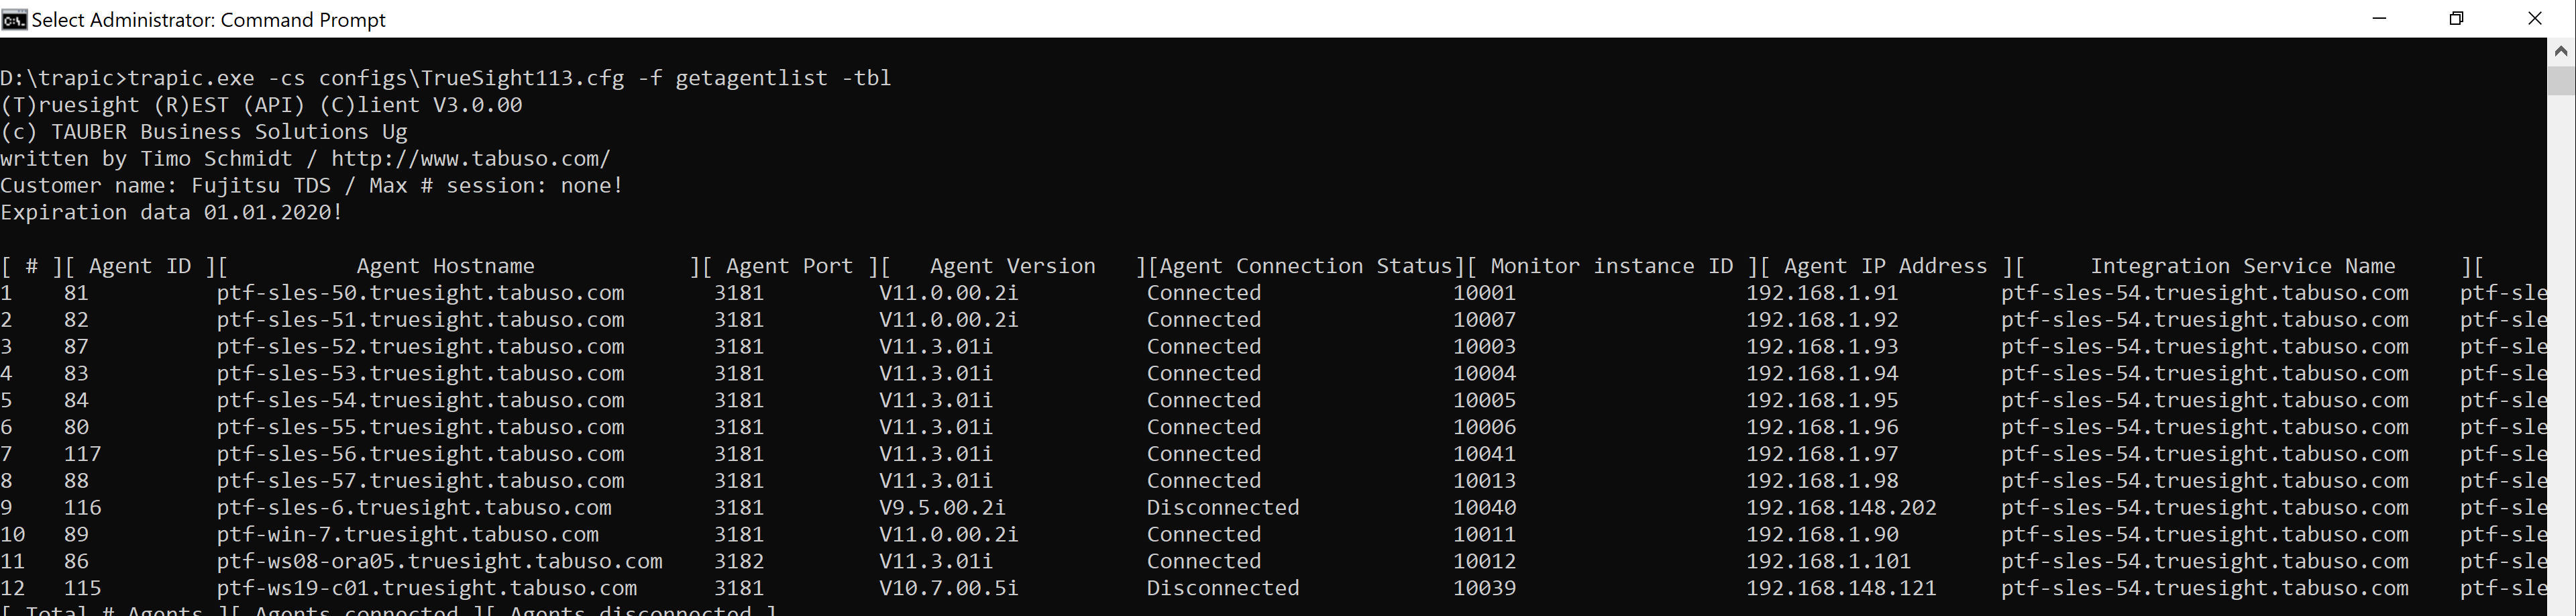 trapic agentlist command result in table format (command: getagentlist)